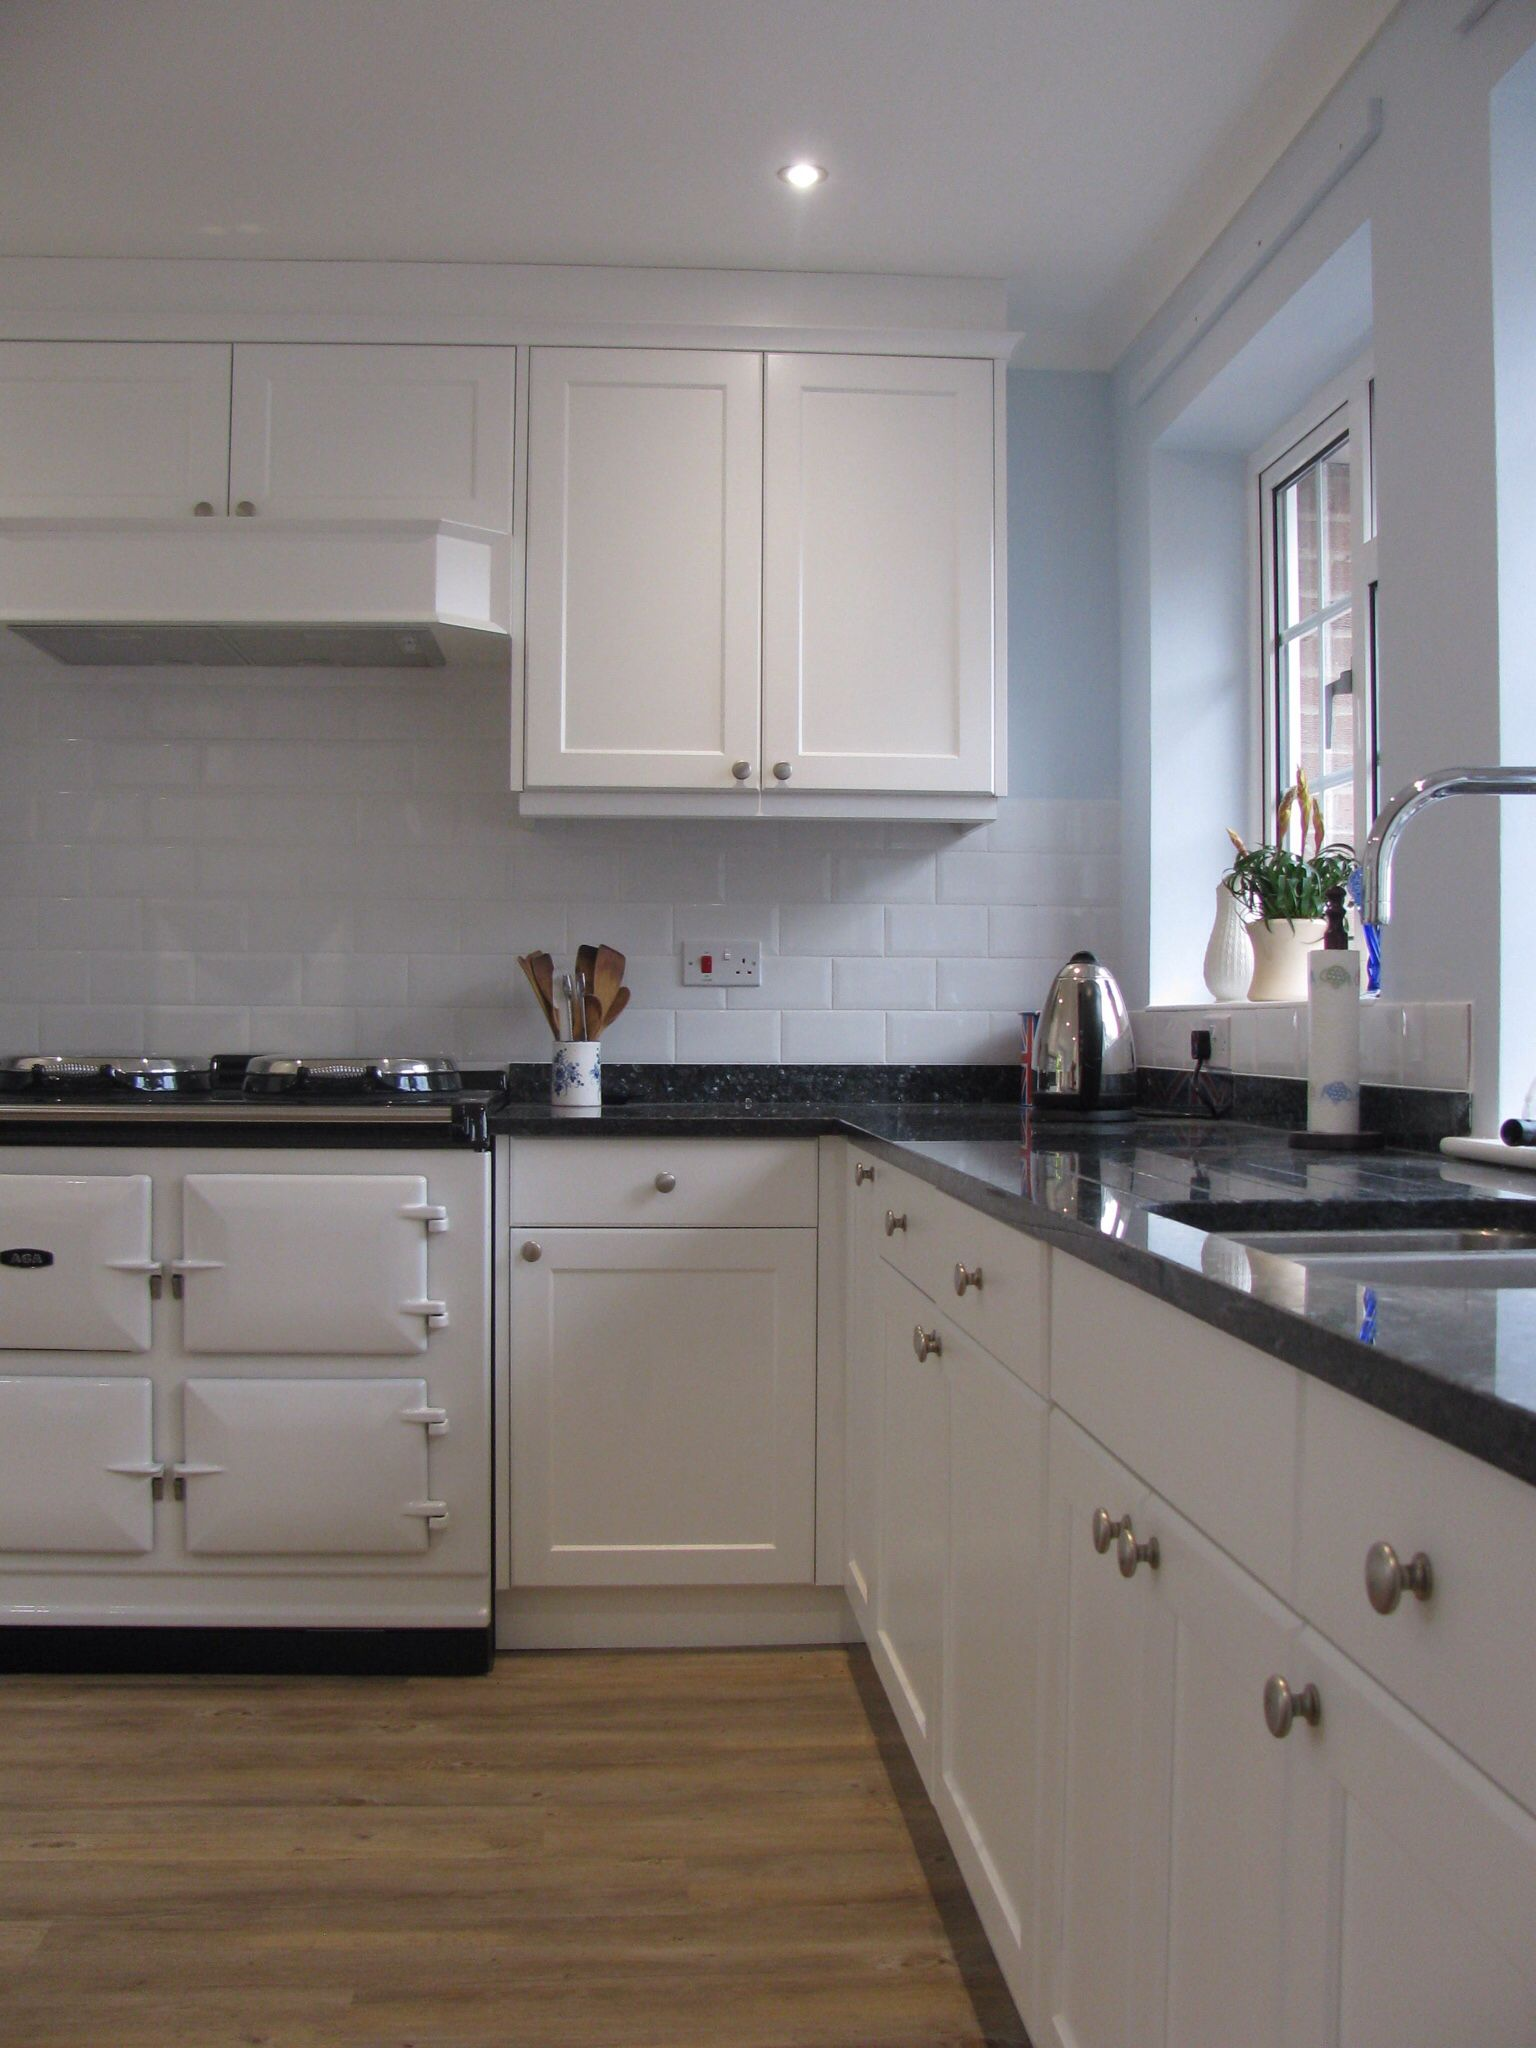 Bespoke Kitchen Finished In Satin White With Blue Pearl